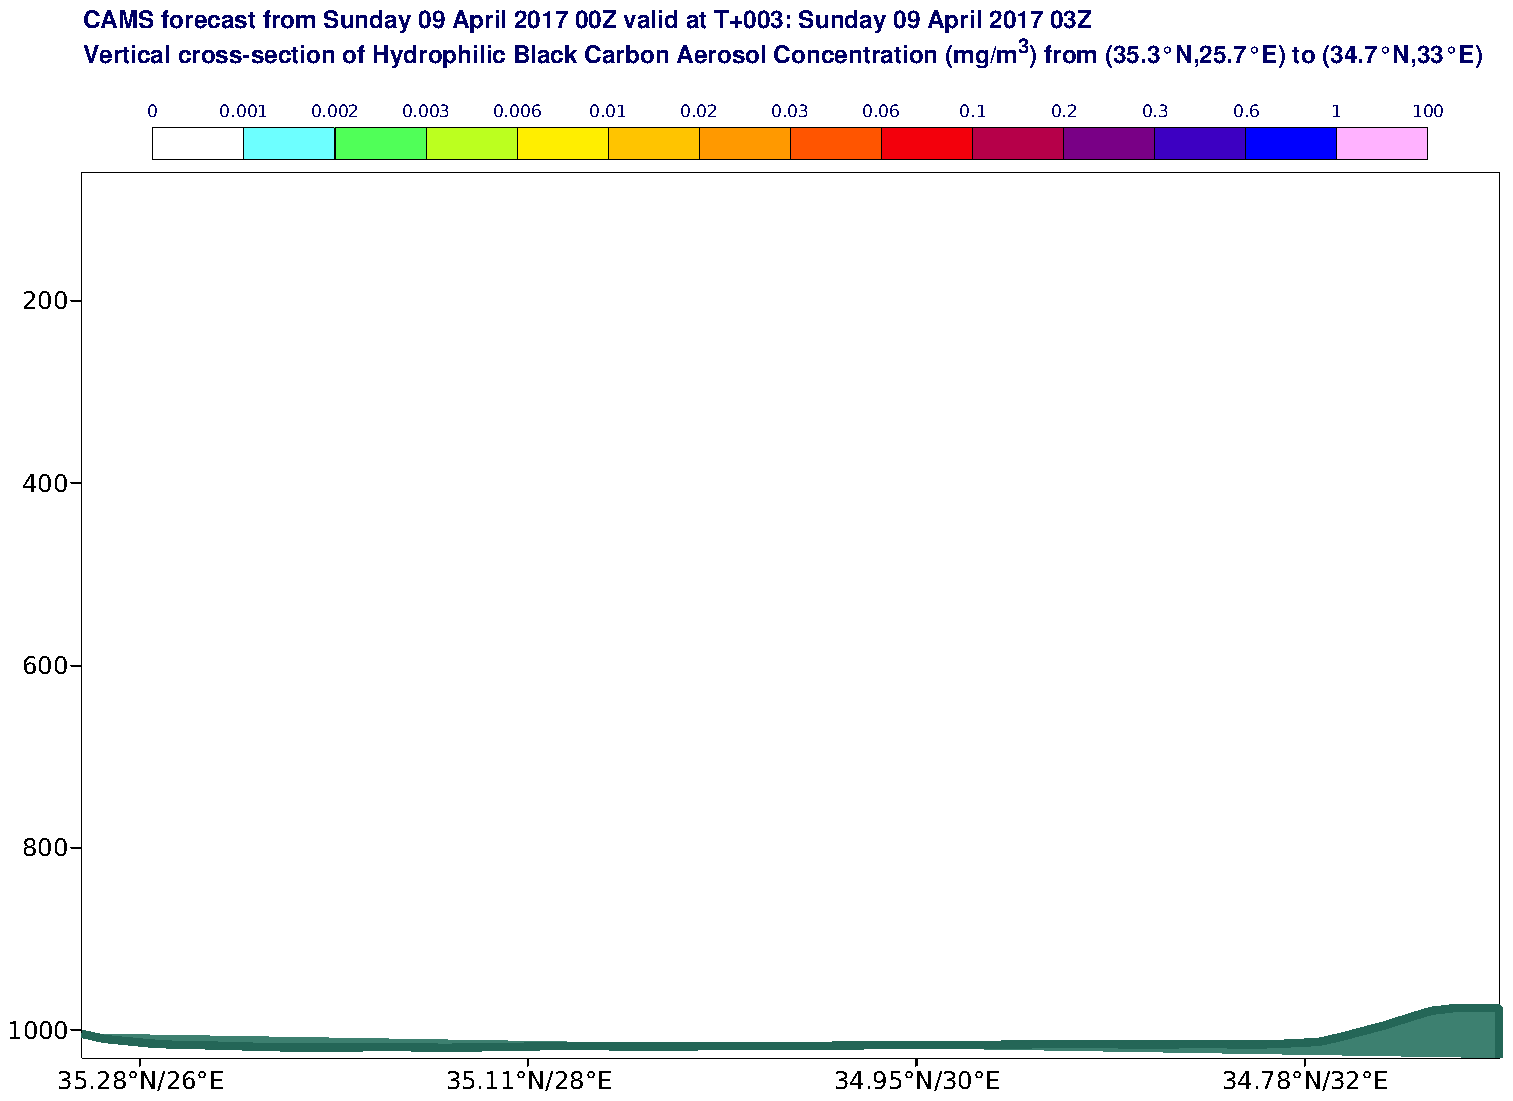 Vertical cross-section of Hydrophilic Black Carbon Aerosol Concentration (mg/m3) valid at T3 - 2017-04-09 03:00